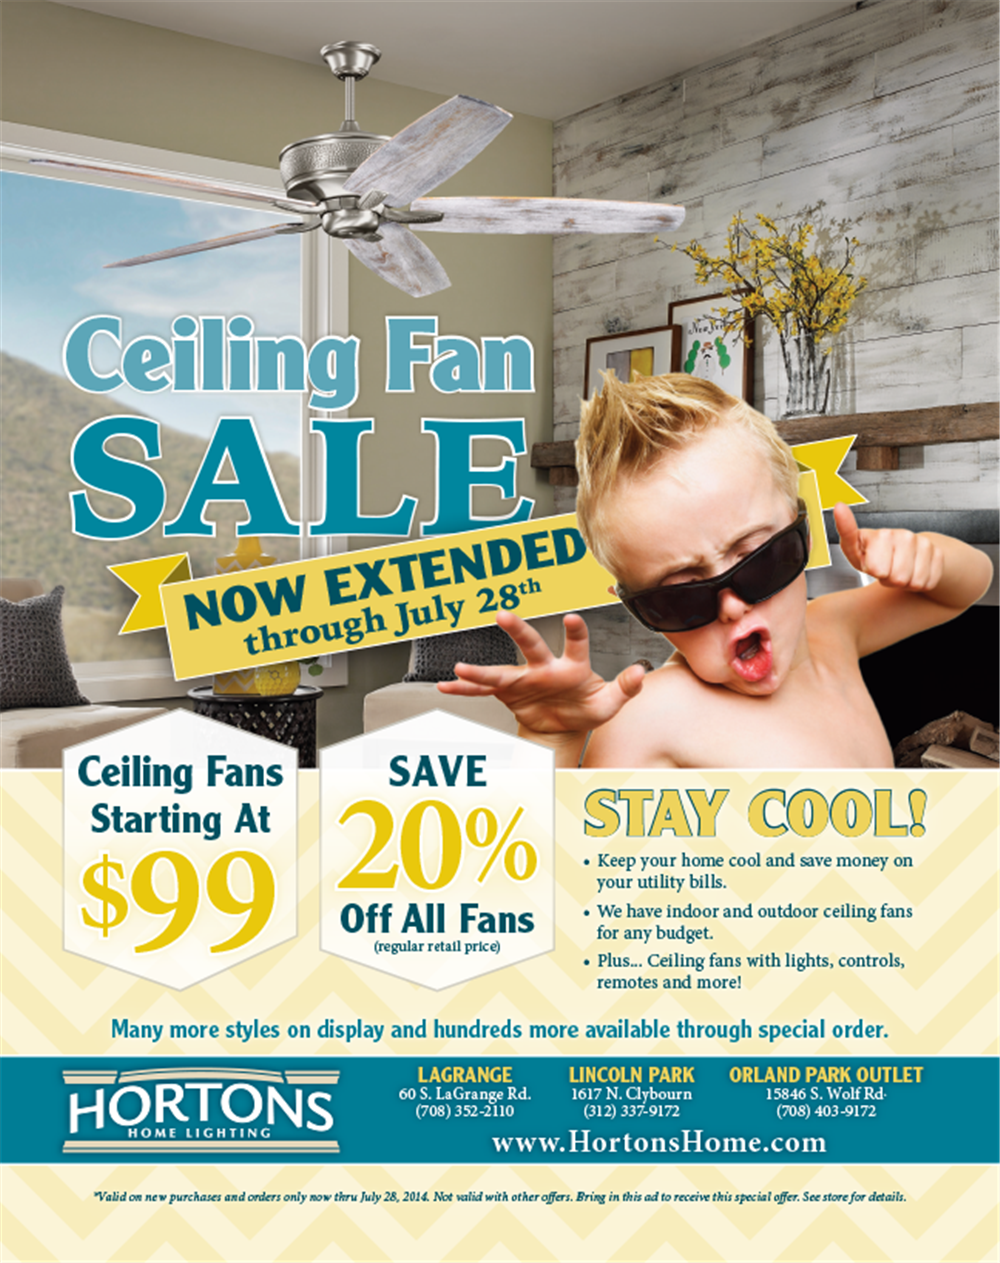 Home Lighting Summer Sale Print Ad